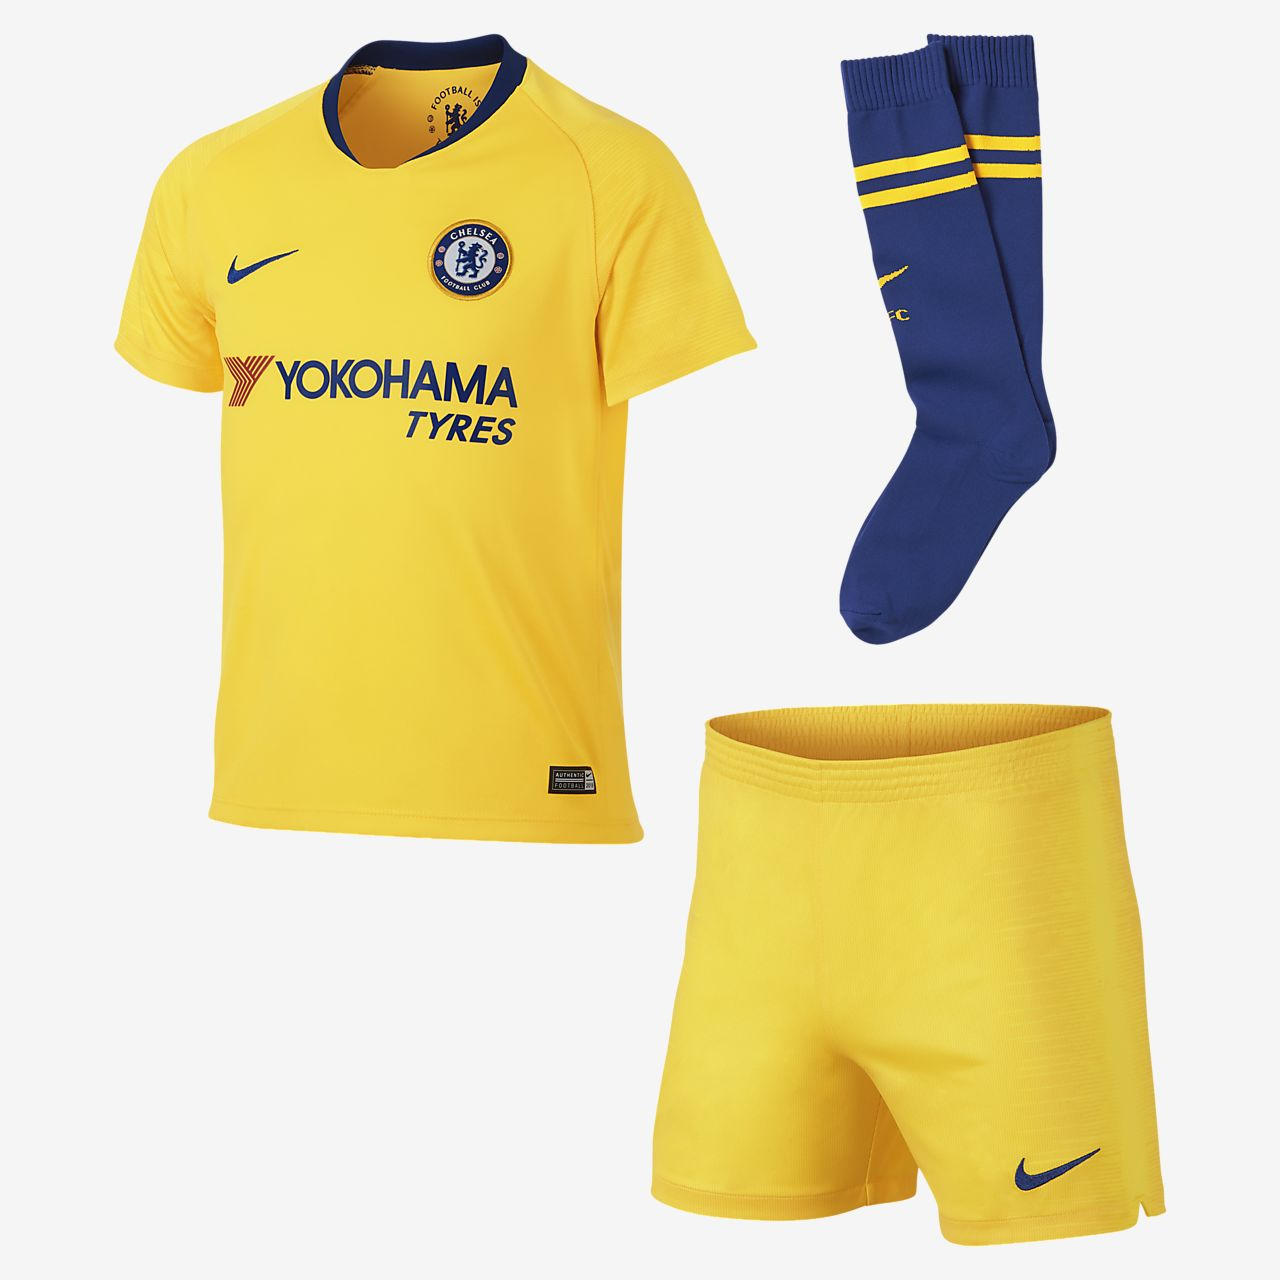 fb2a0ddb1 2018/19 Chelsea FC Stadium Away Younger Kids' Football Kit. Nike.com SA